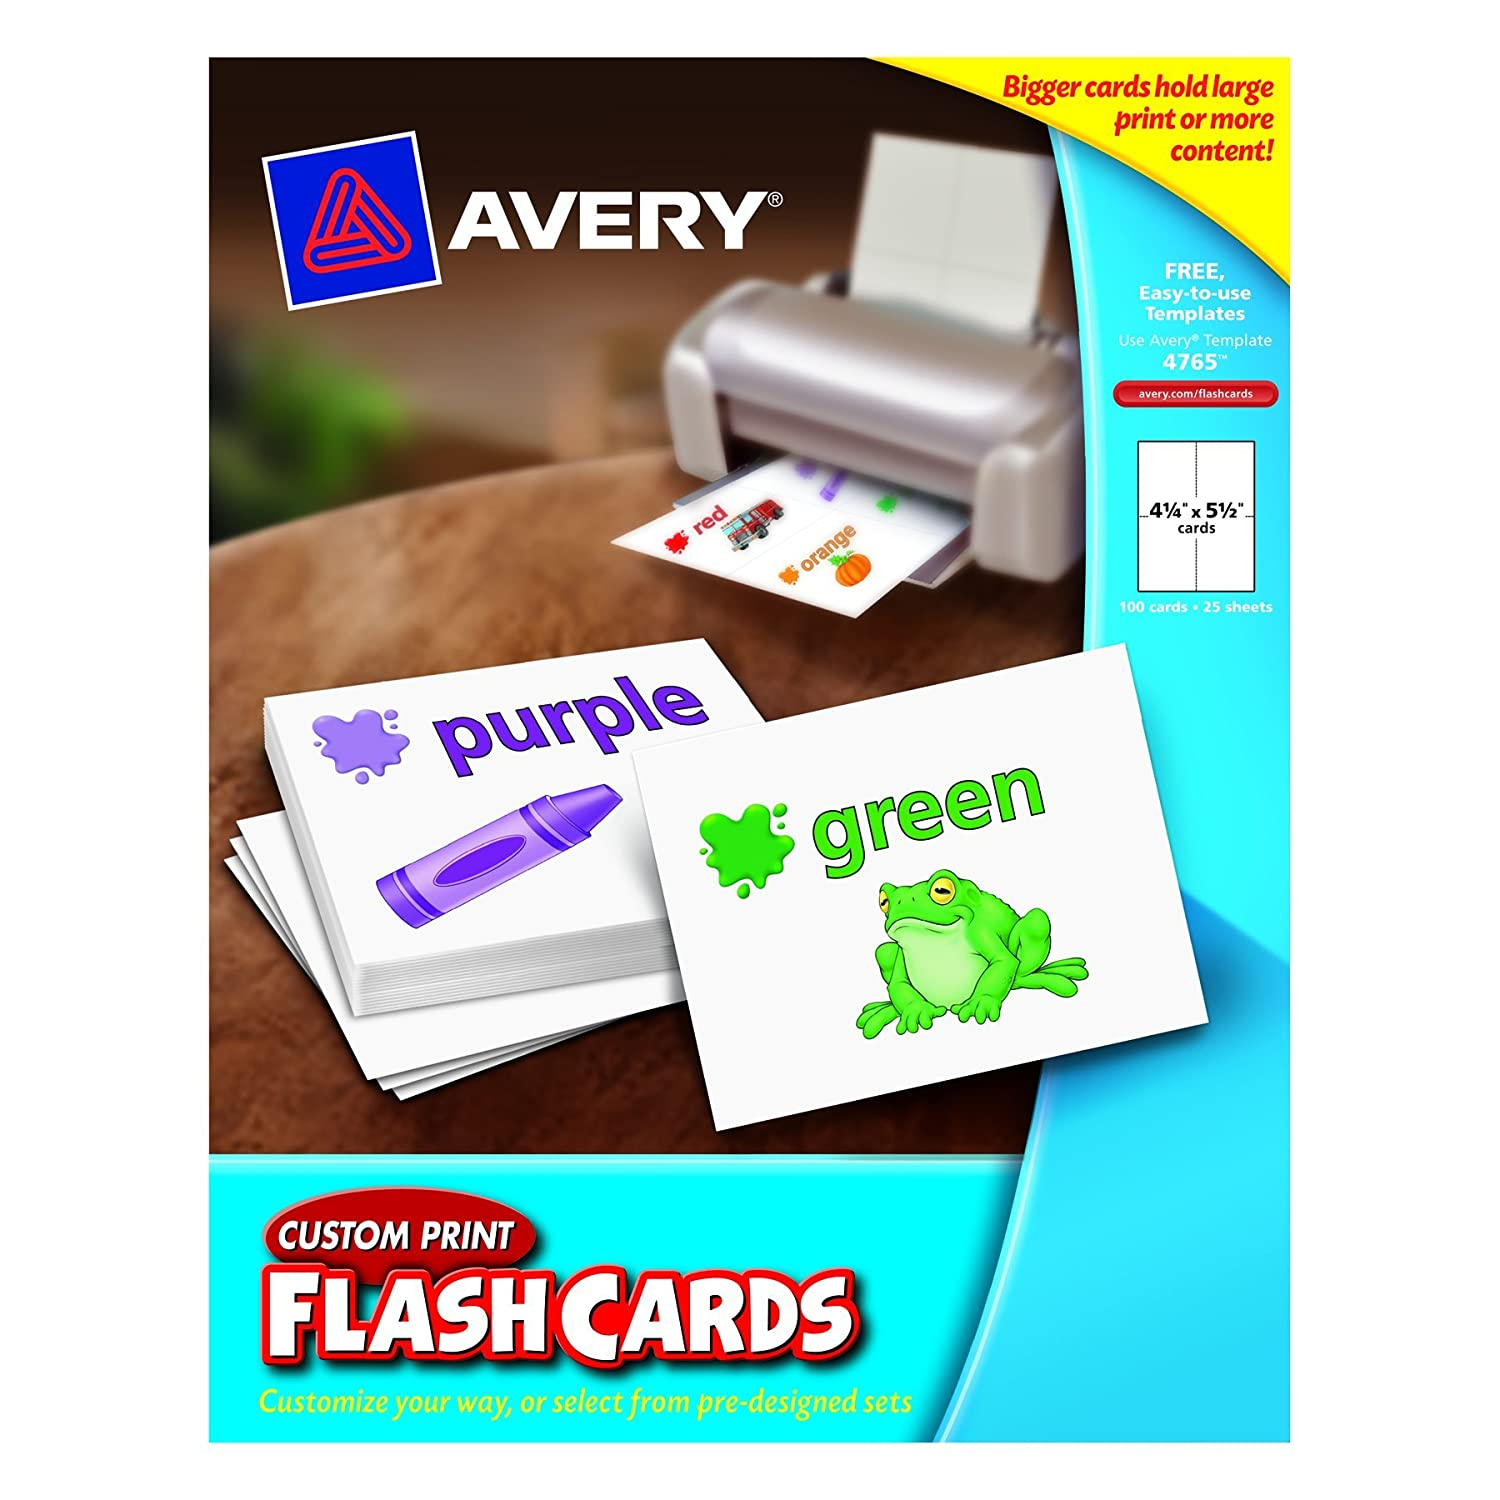 Amazon Avery Custom Print Flash Cards 425 X 55 Inches For